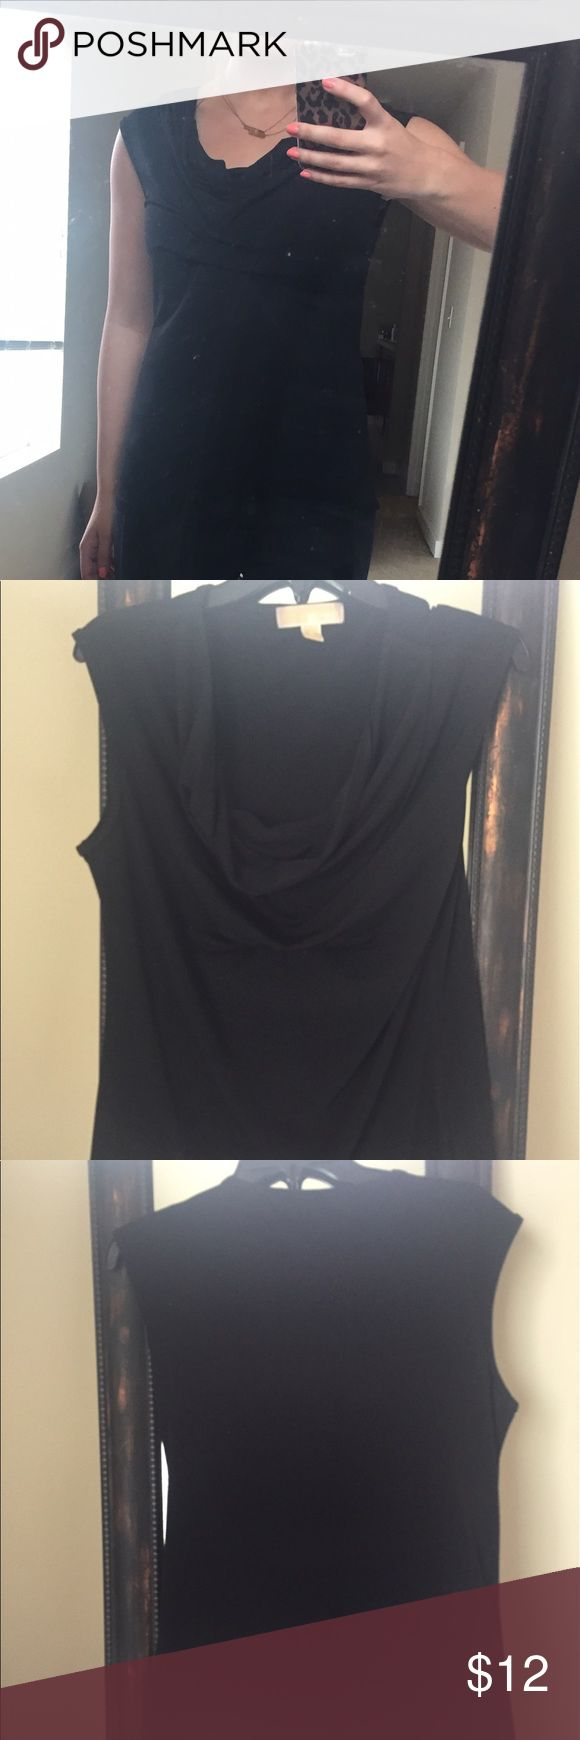 Michael Kors black sleeveless cowl neck top Black Michael Kors business work top. Works perfect with jeans, blazer and trousers. Only worn once. Michael Kors Tops Button Down Shirts